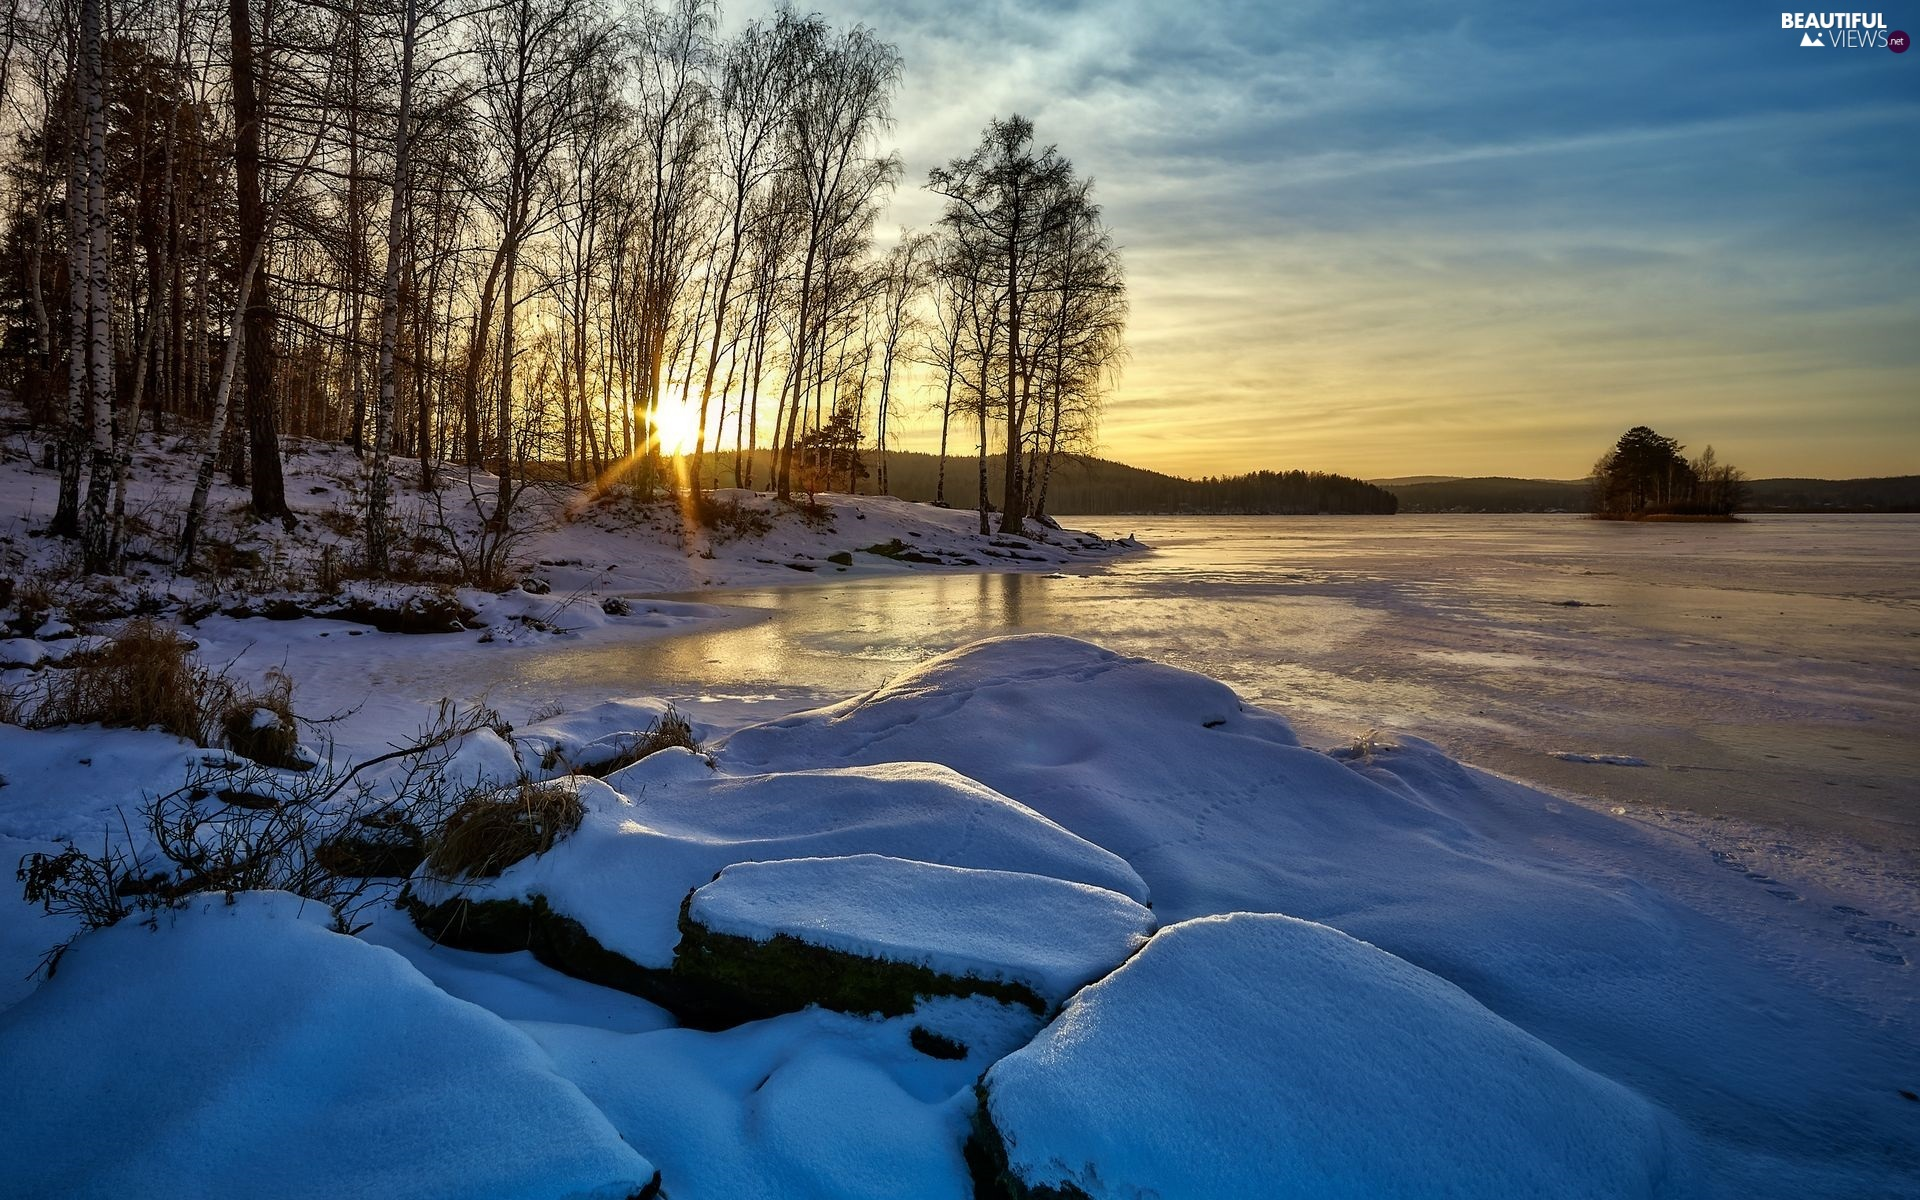 Snowy, winter, Stones, rays of the Sun, viewes, birch, lake, trees, frozen